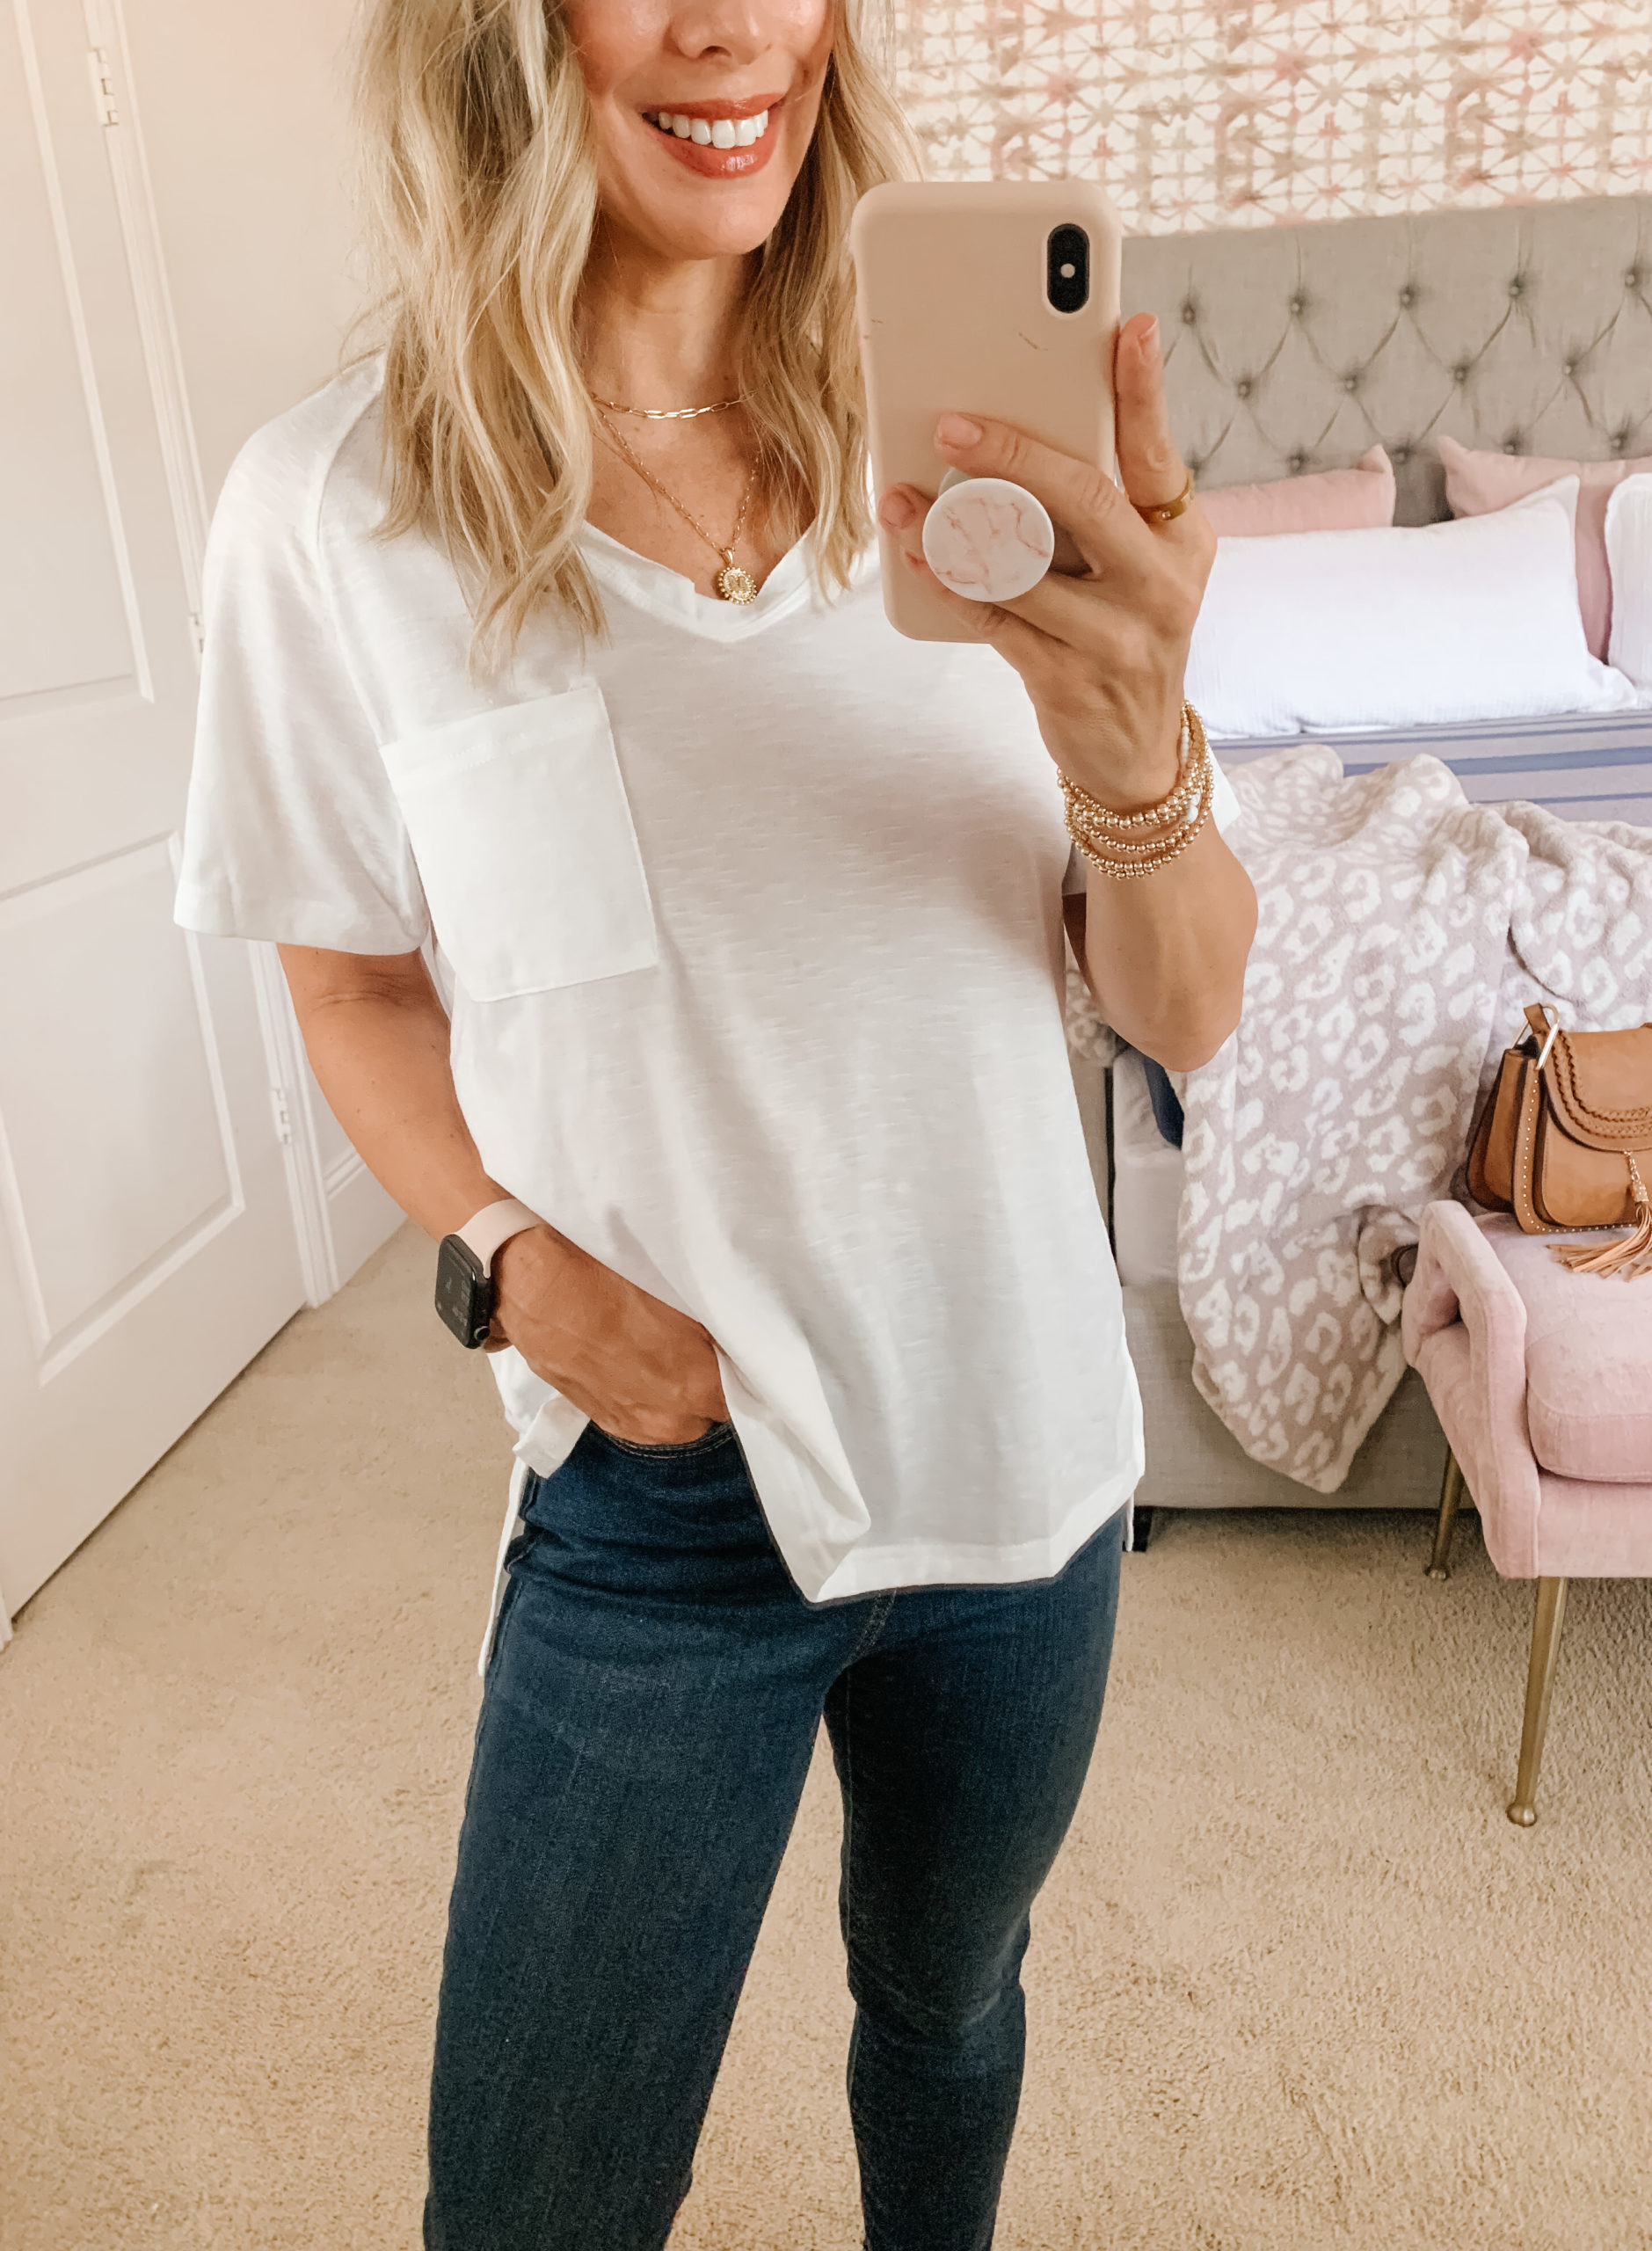 Amazon Fashion, V Neck Tee, Jeans, Sneakers, and Crossbody